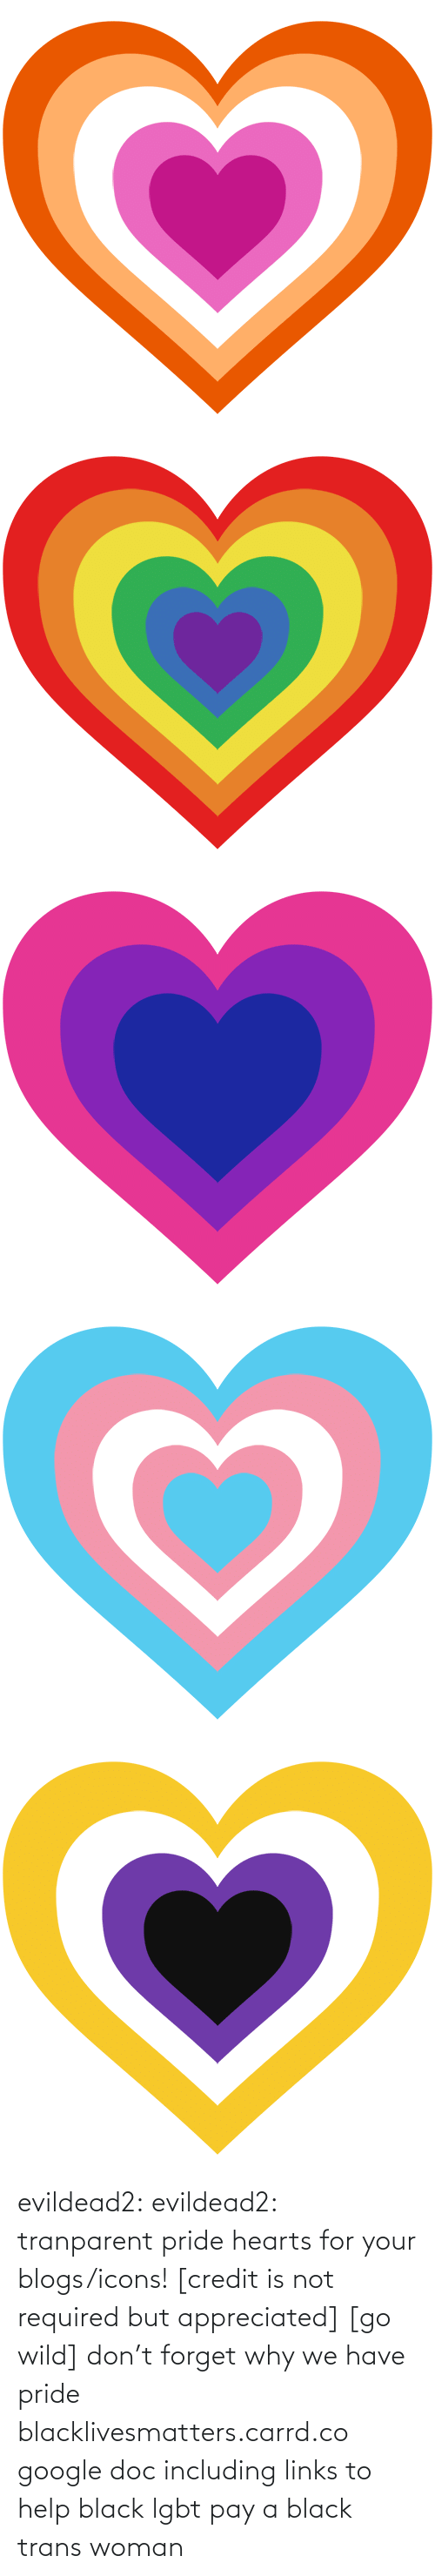 trans: evildead2:  evildead2:  tranparent pride hearts for your blogs/icons! [credit is not required but appreciated] [go wild]      don't forget why we have pride  blacklivesmatters.carrd.co  google doc including links to help black lgbt pay a black trans woman